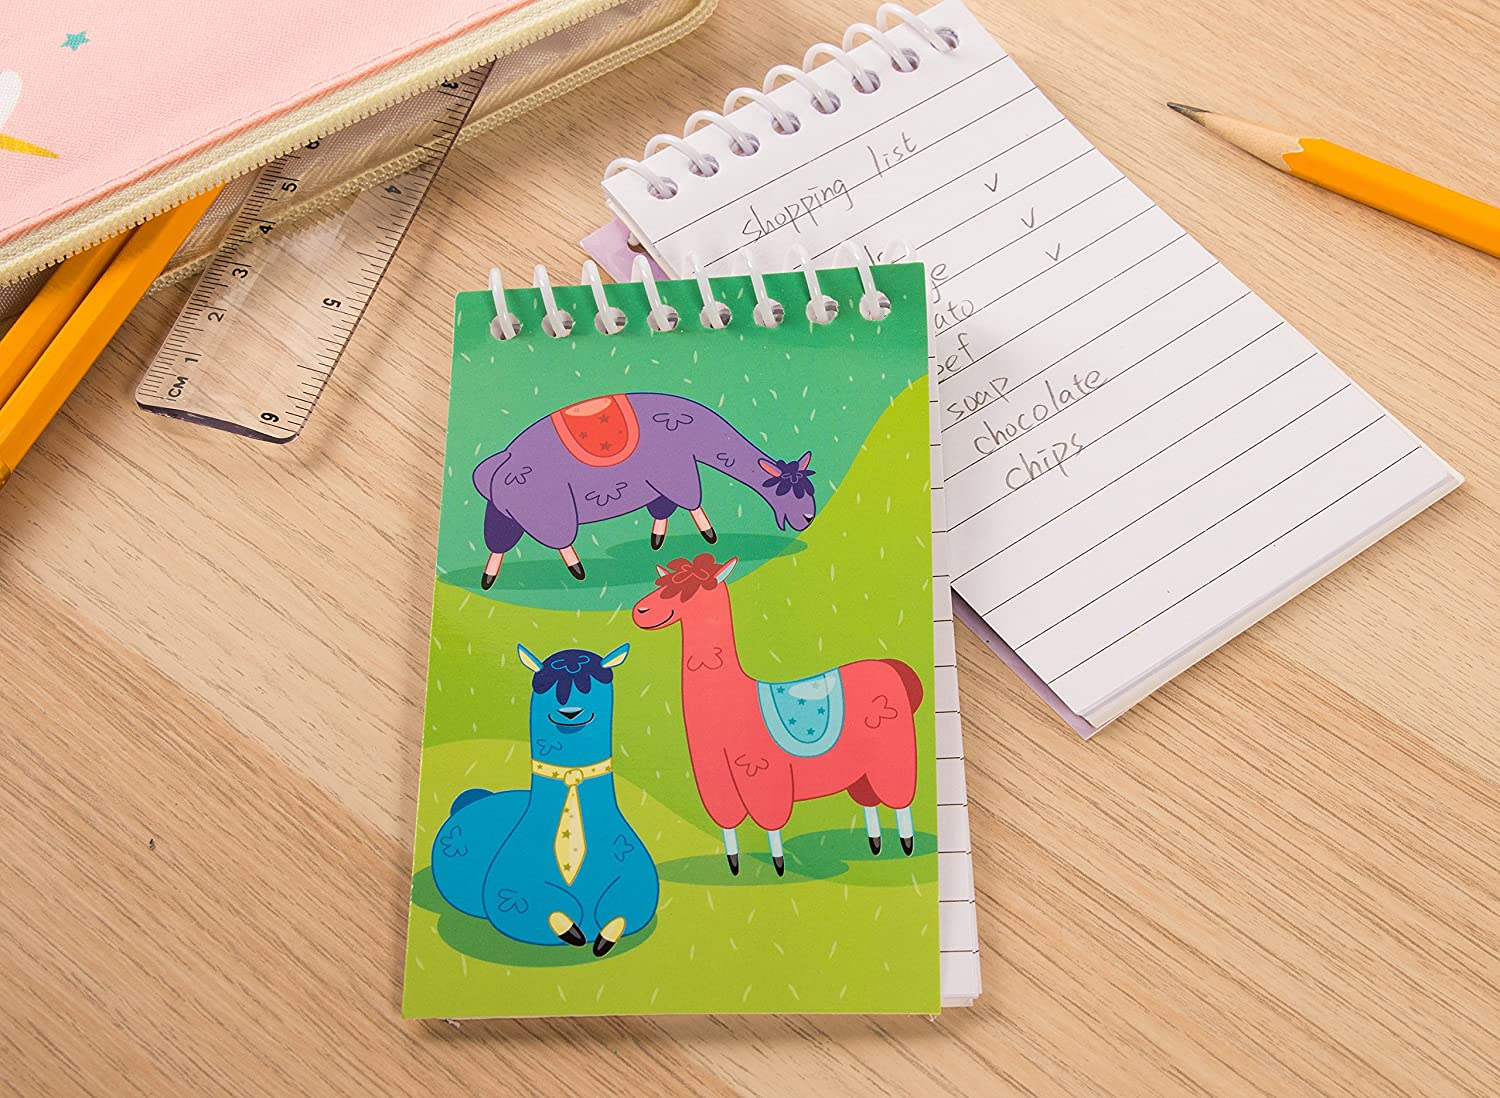 Spiral Notepad Lined Paper 3 x 5 Inches To-do Lists Bulk Mini Spiral Notepads for Journaling 24-Pack Top Spiral Notebooks Note Taking 4 Dinosaur Designs